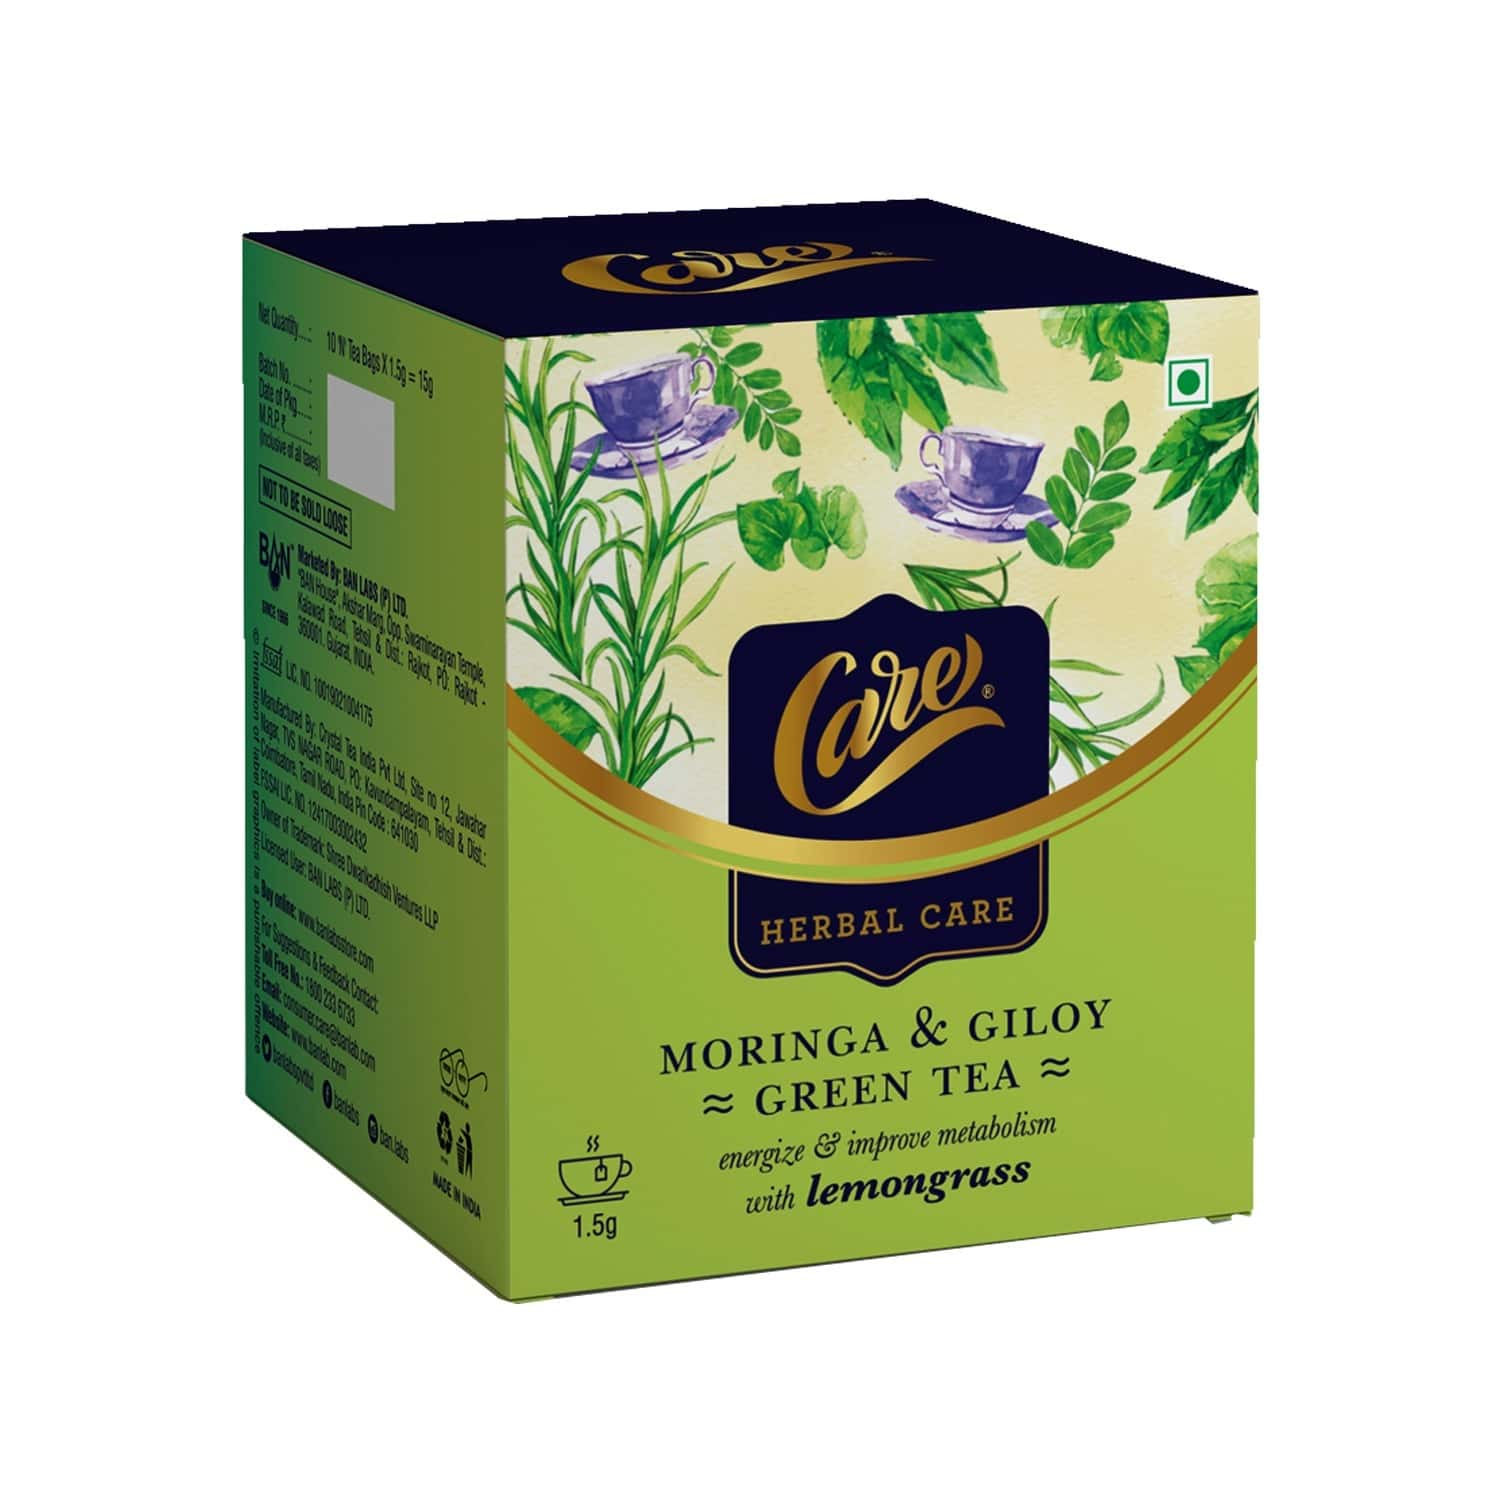 Care Moringa + Giloy With Lemongrass - 15g